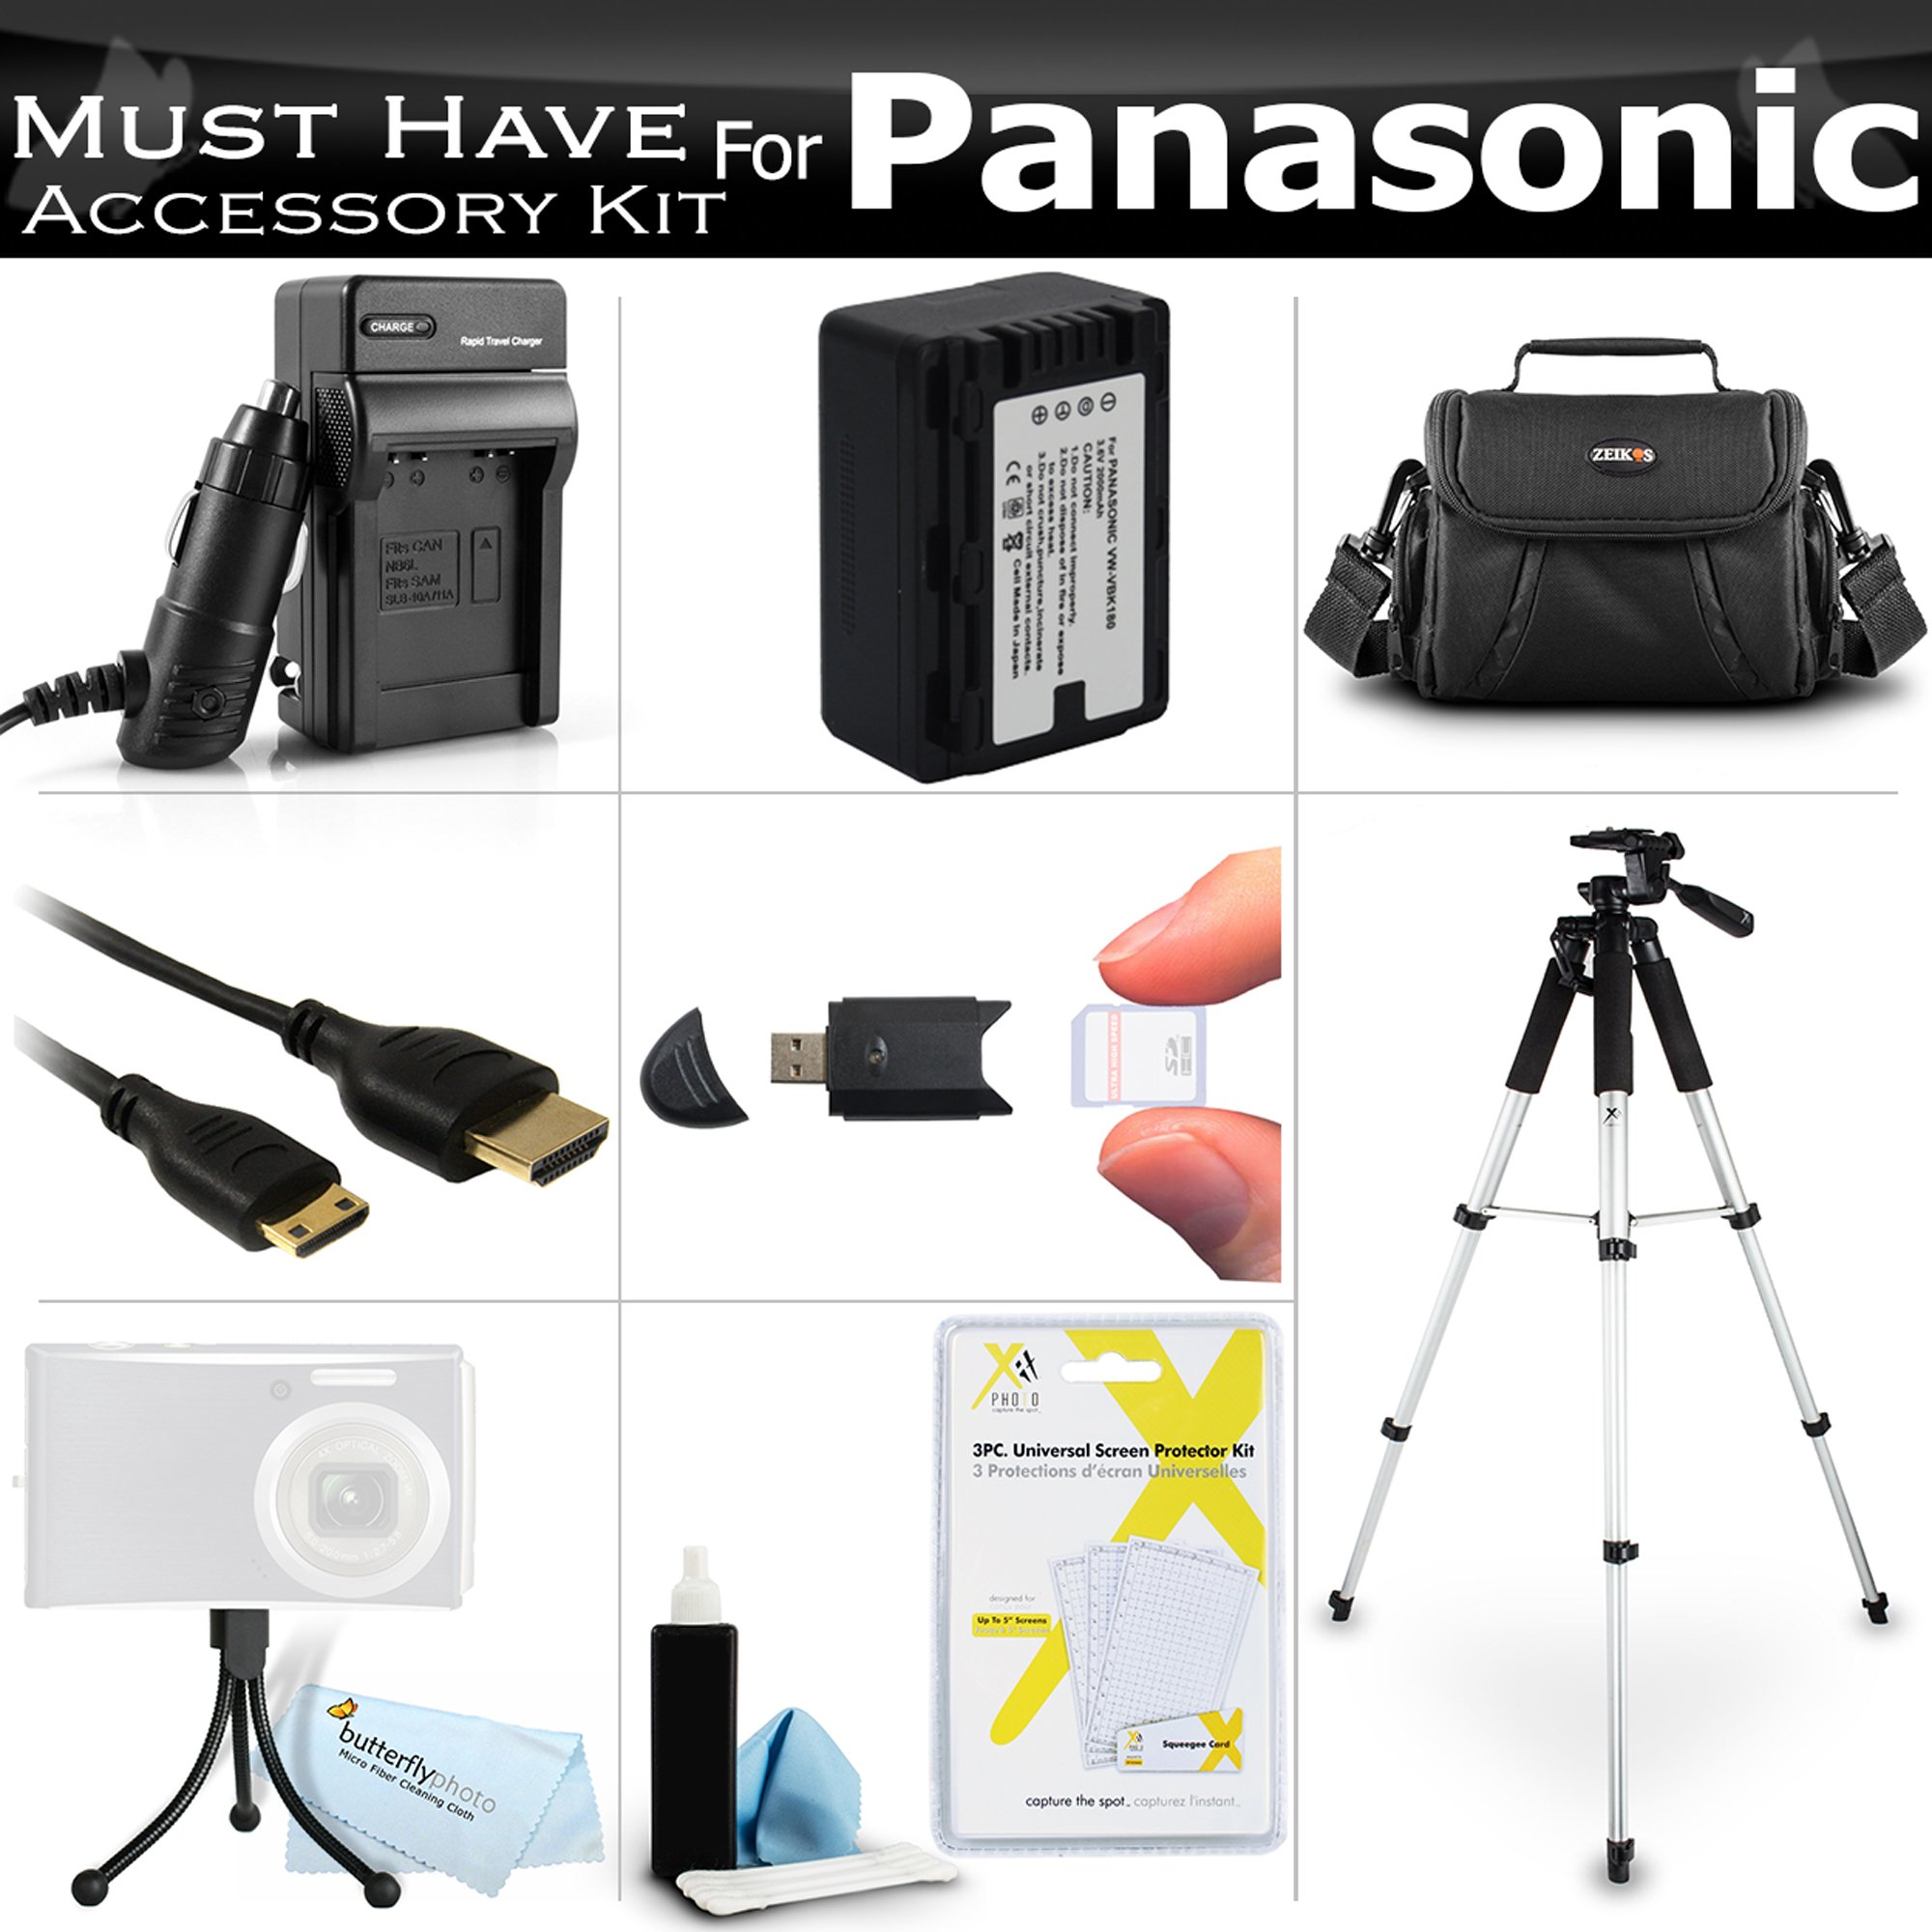 Must Have Accessory Kit For Panasonic HC-V700, HC-V700M, HC-V500, HC-V500M, HC-V100, HC-V100M, HC-V10 Camcorder Includes Replacement (2000Mah) VW-VBK180 Battery + Ac/ Dc Charger + Deluxe Case + Tripod + Mini HDMI Cable + USB 2.0 SD Reader + Much More by ButterflyPhoto